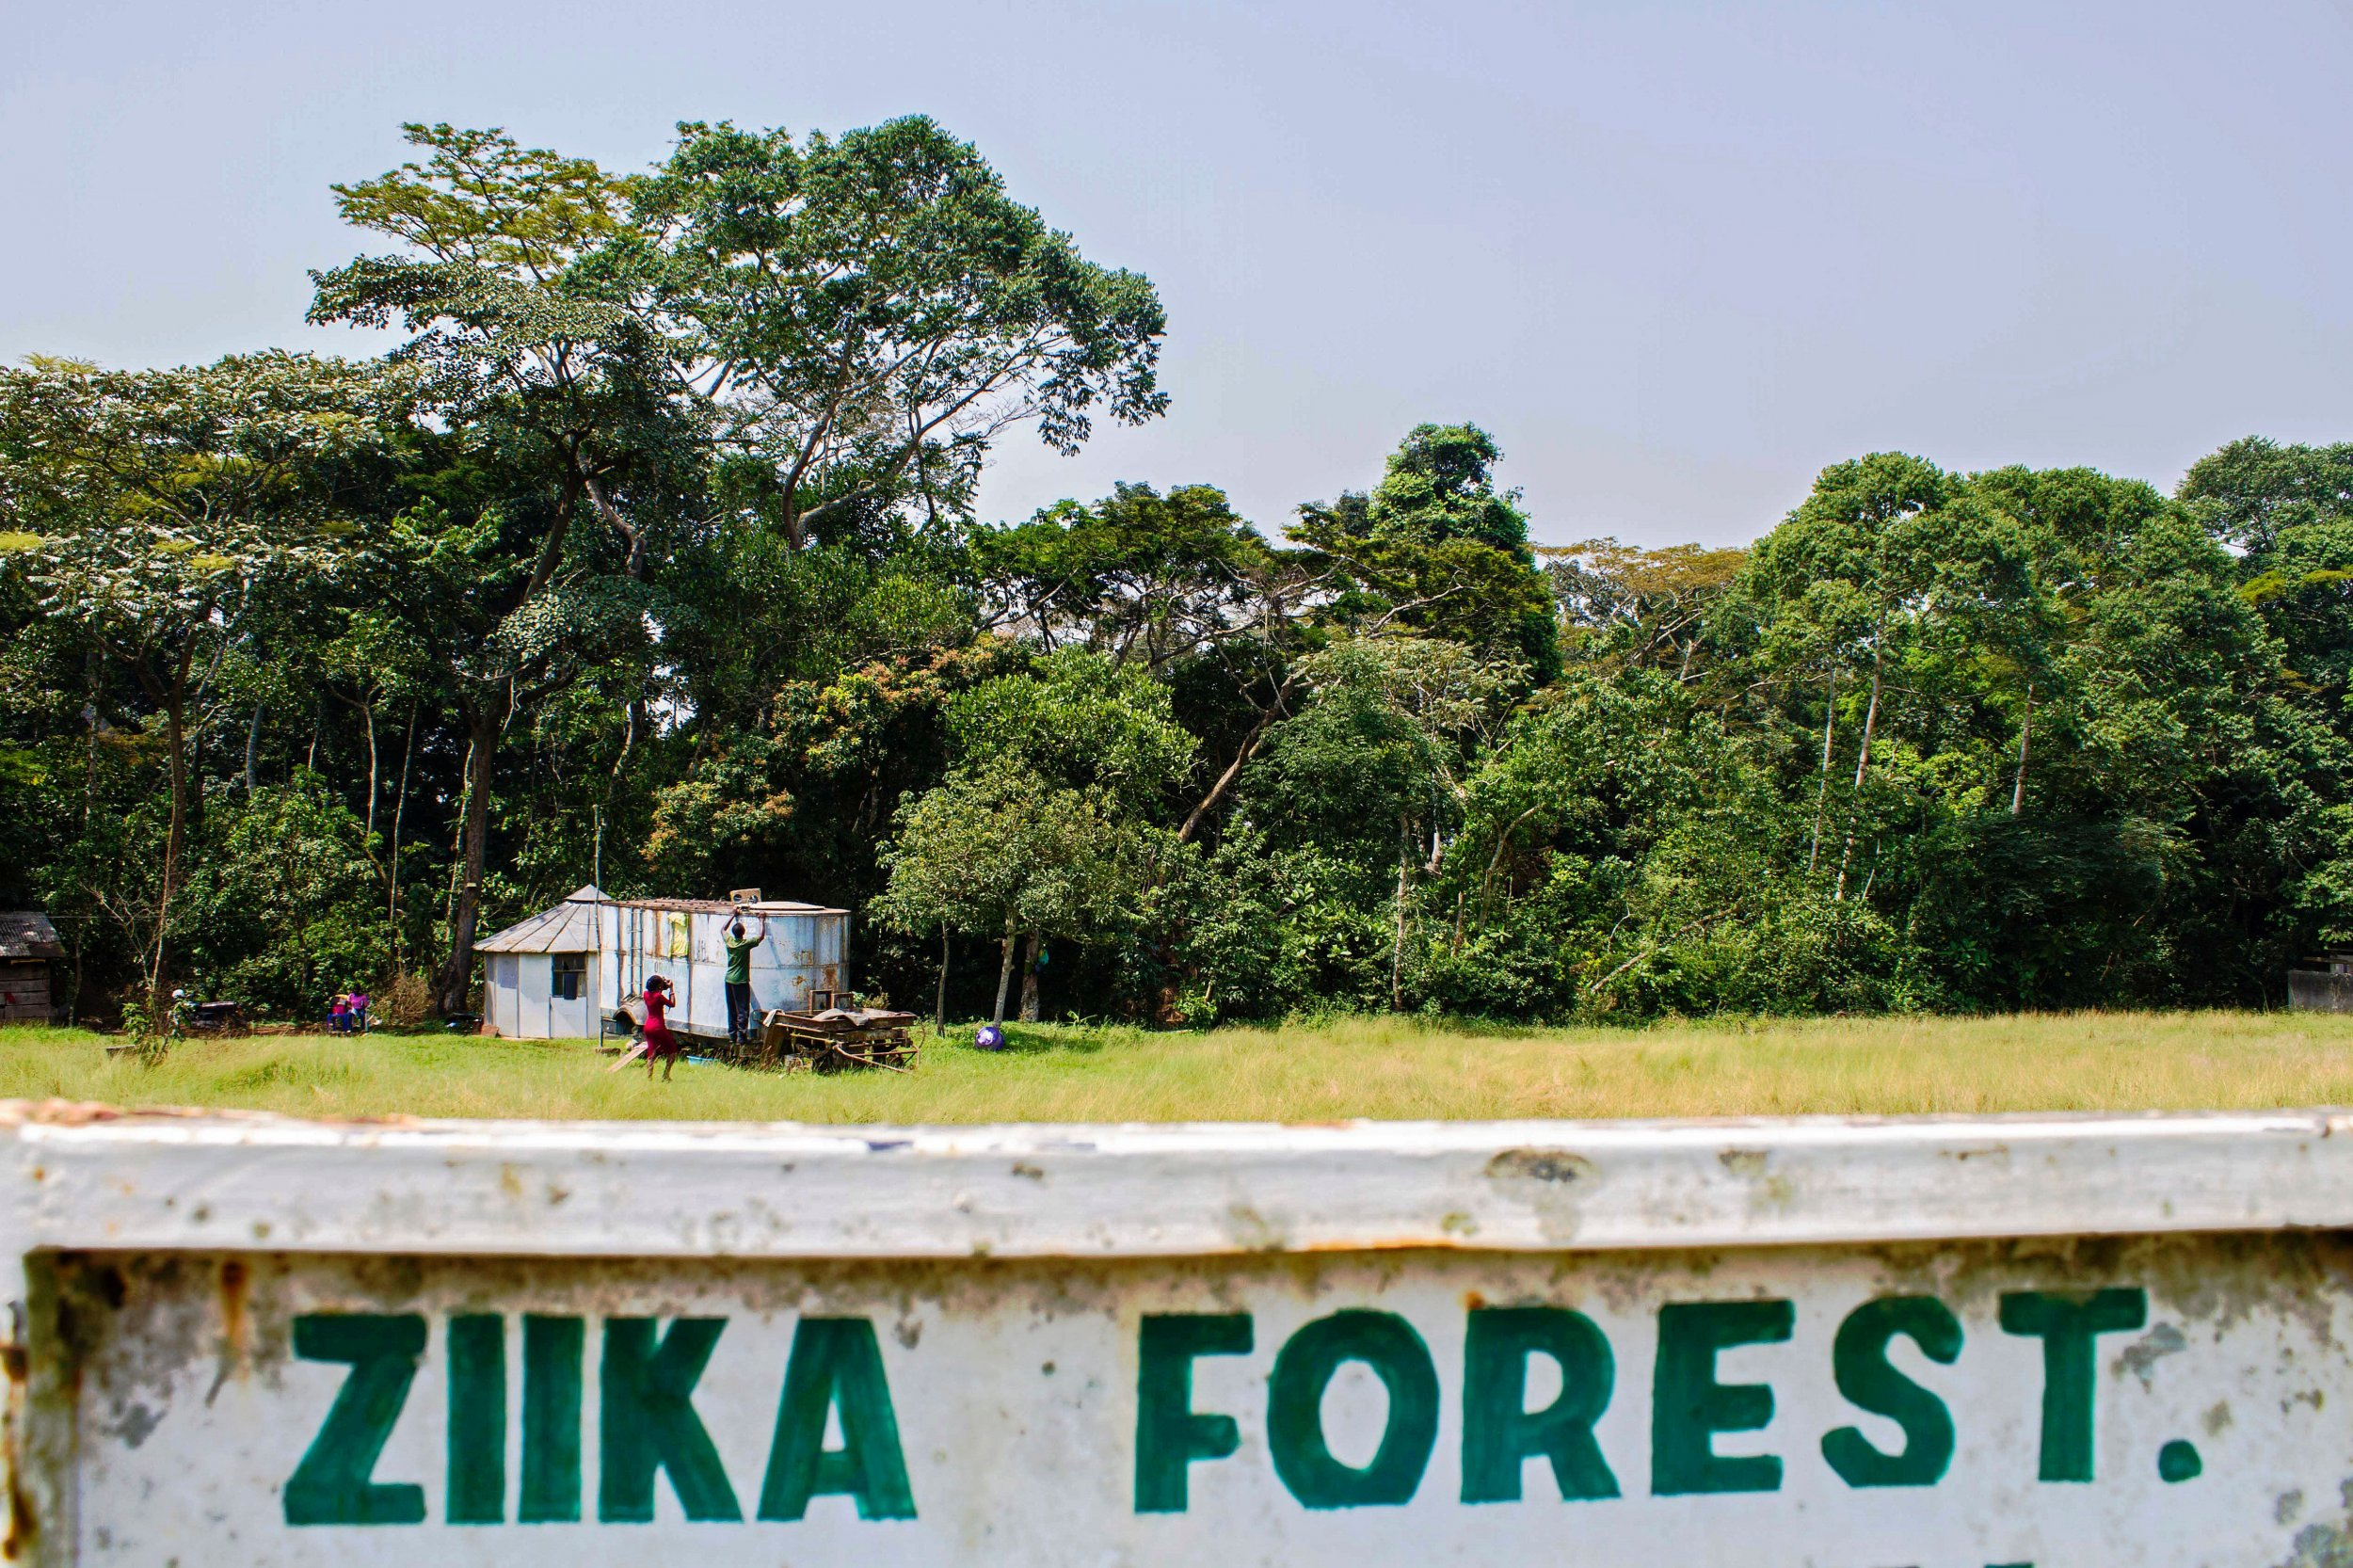 The Zika forest in Uganda, where the Zika virus was discovered in 1947.